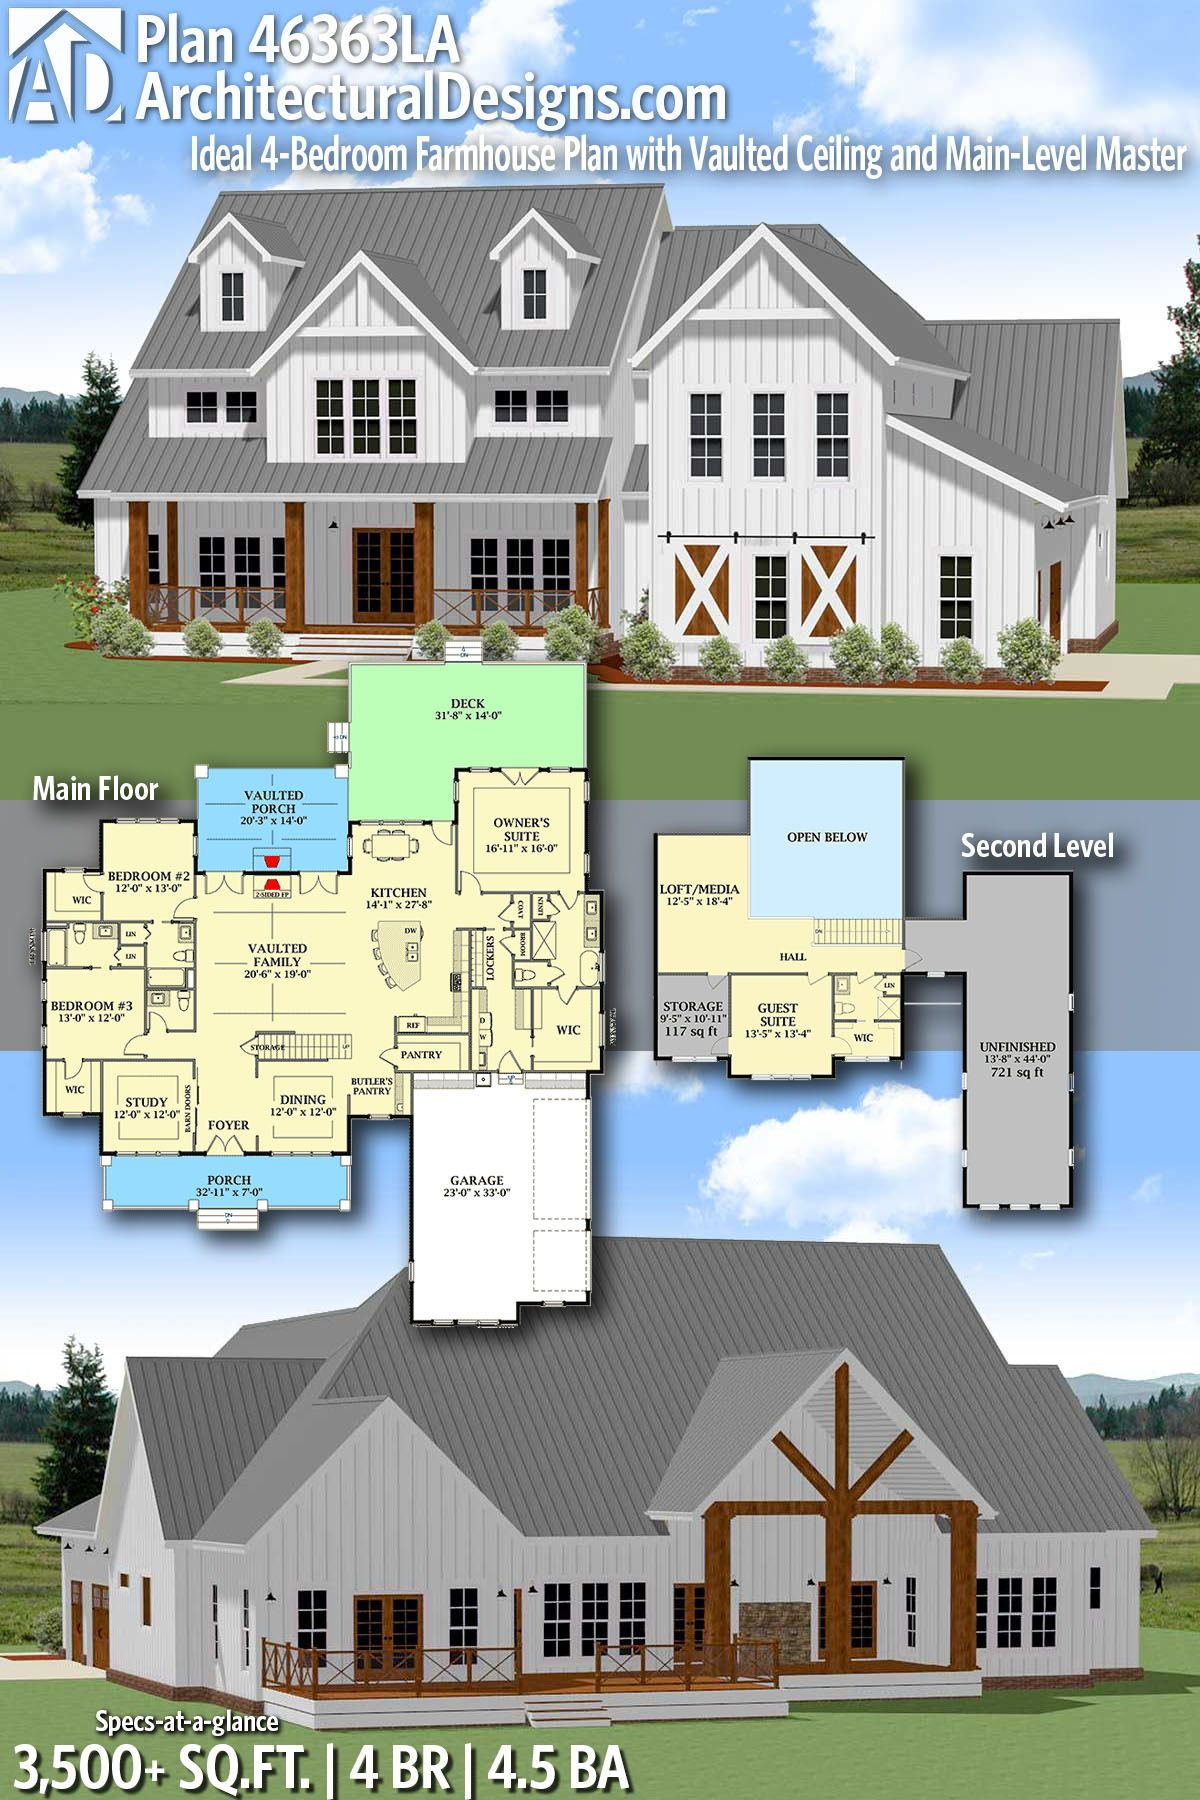 Plan 46363la Ideal 4 Bedroom Farmhouse Plan With Vaulted Ceiling And Main Level Master Farmhouse Plans Dream House Plans New House Plans